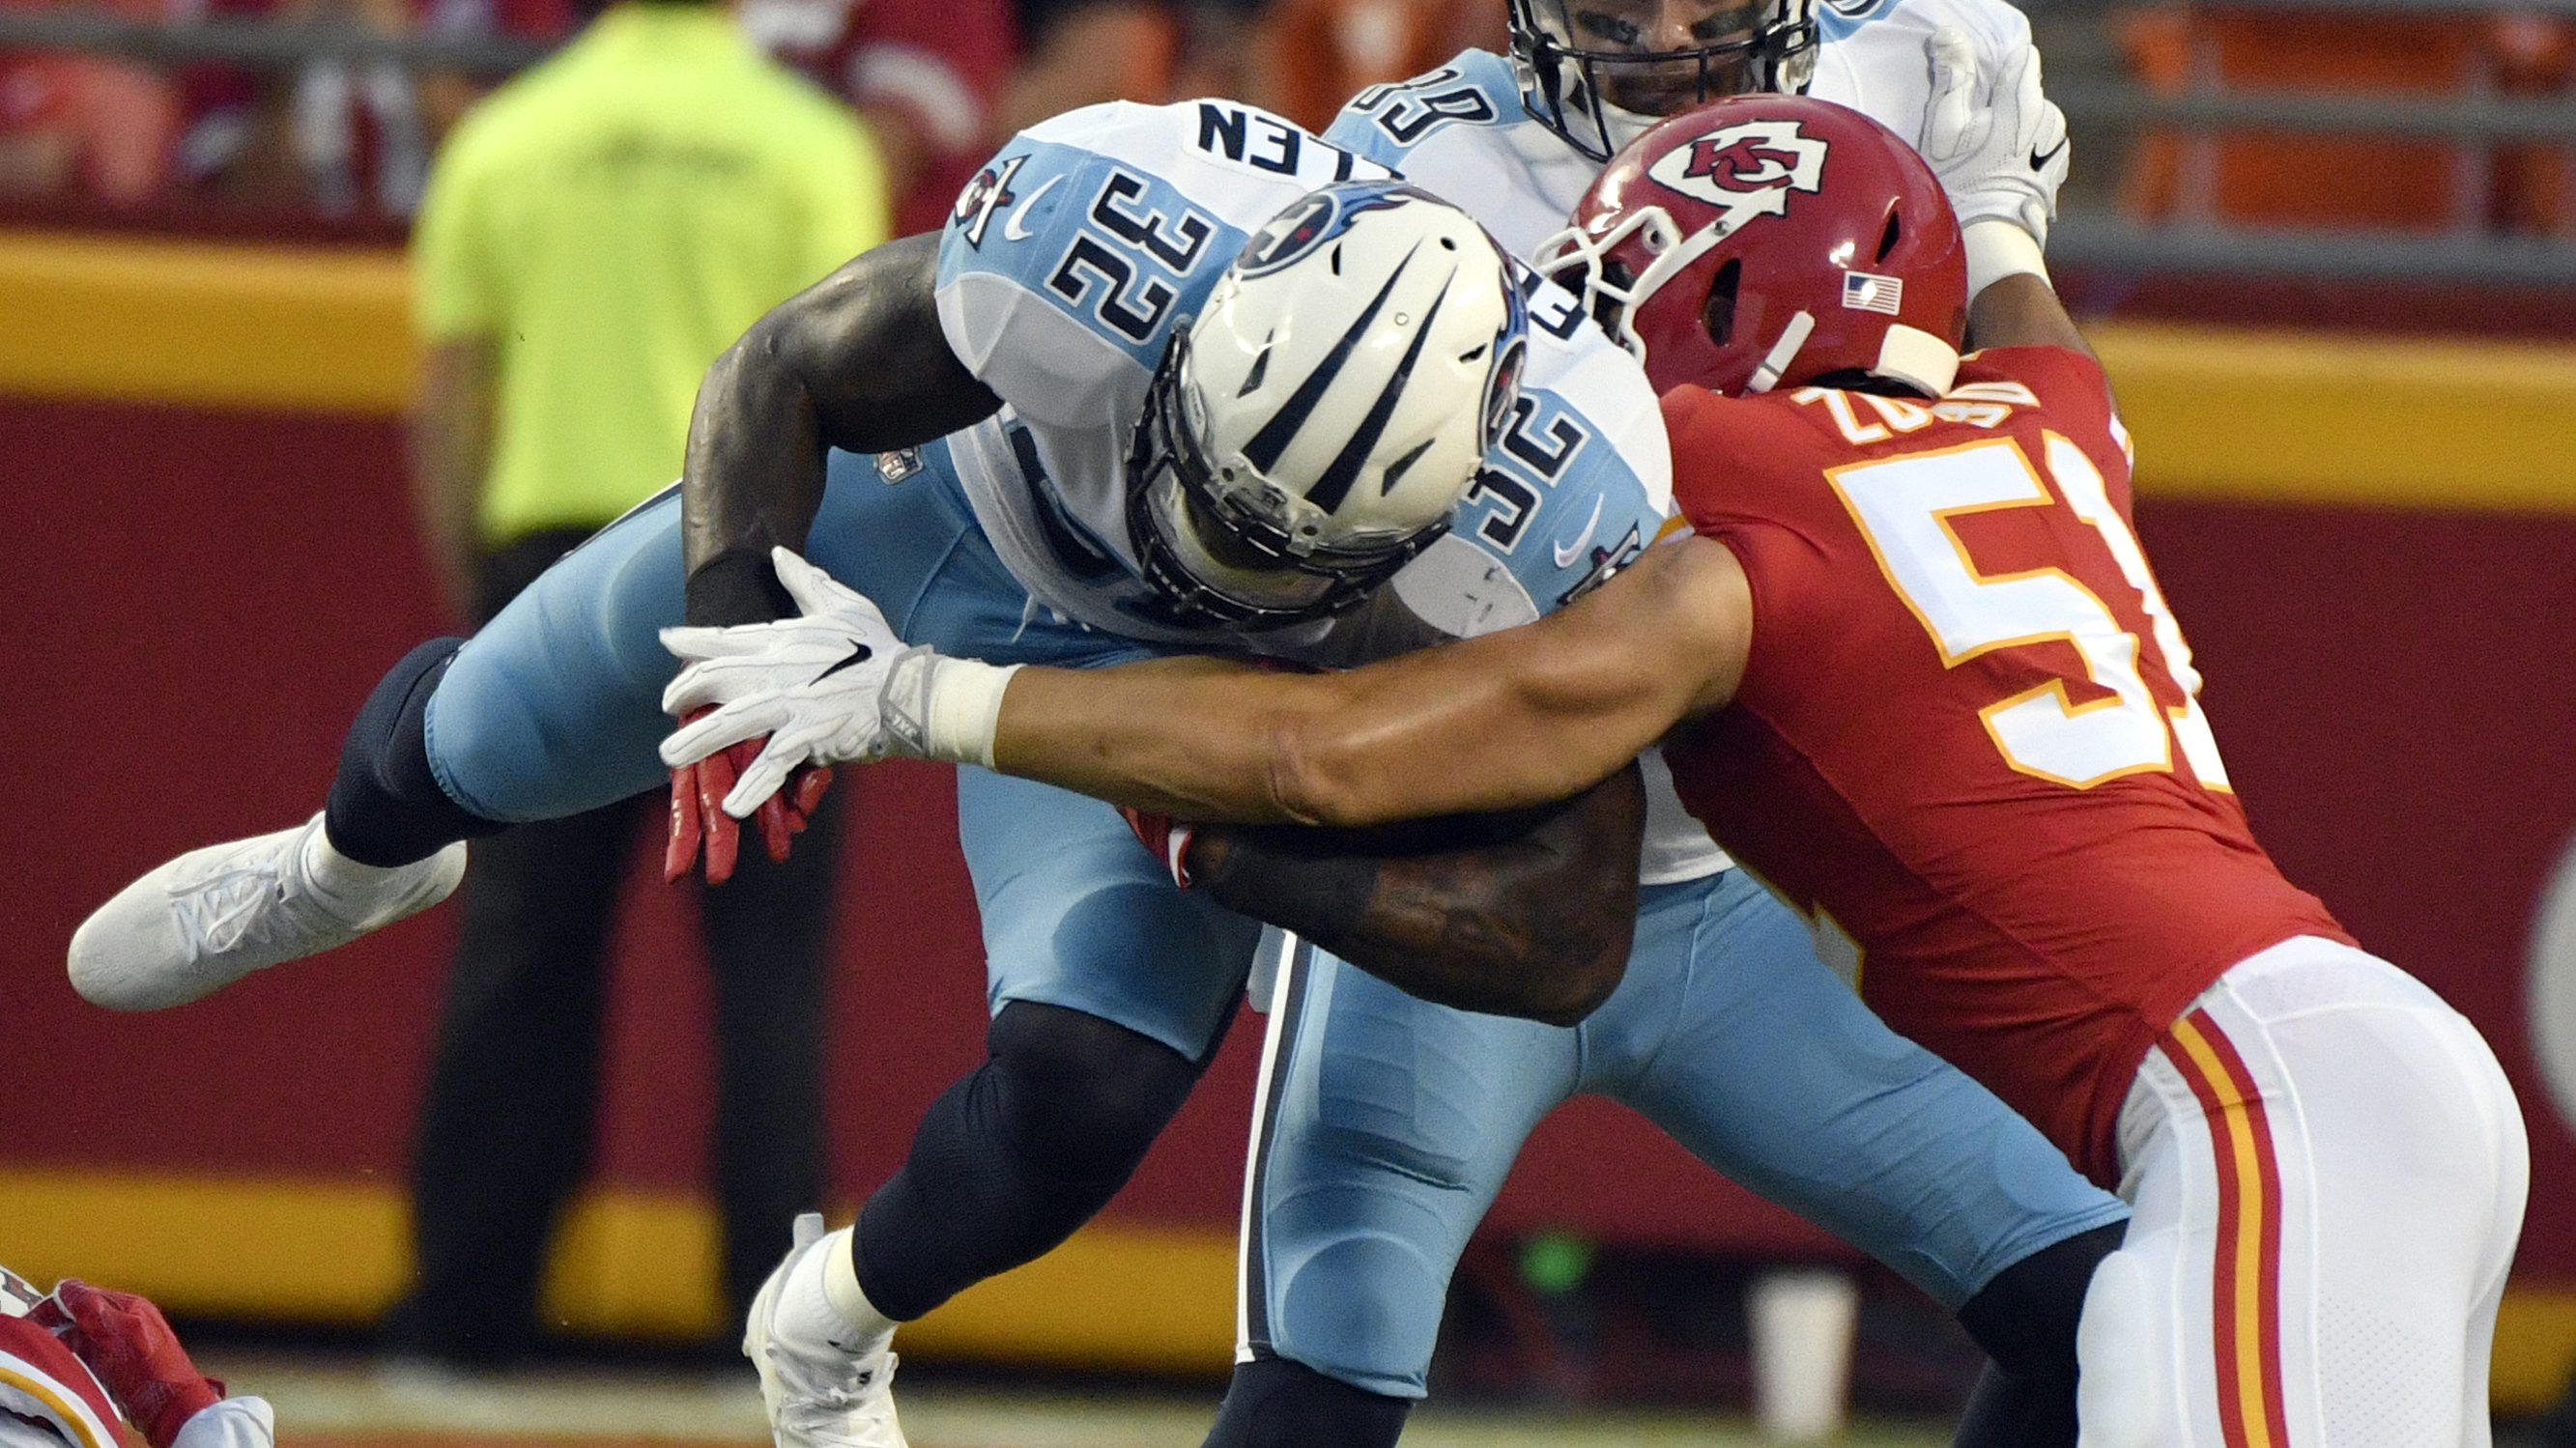 Tennessee Titans running back David Fluellen (32) is stopped by Kansas City Chiefs linebacker Frank Zombo (51) during the first half of an NFL preseason football game in Kansas City, Mo., Thursday, Aug. 31, 2017. (AP Photo/Ed Zurga)